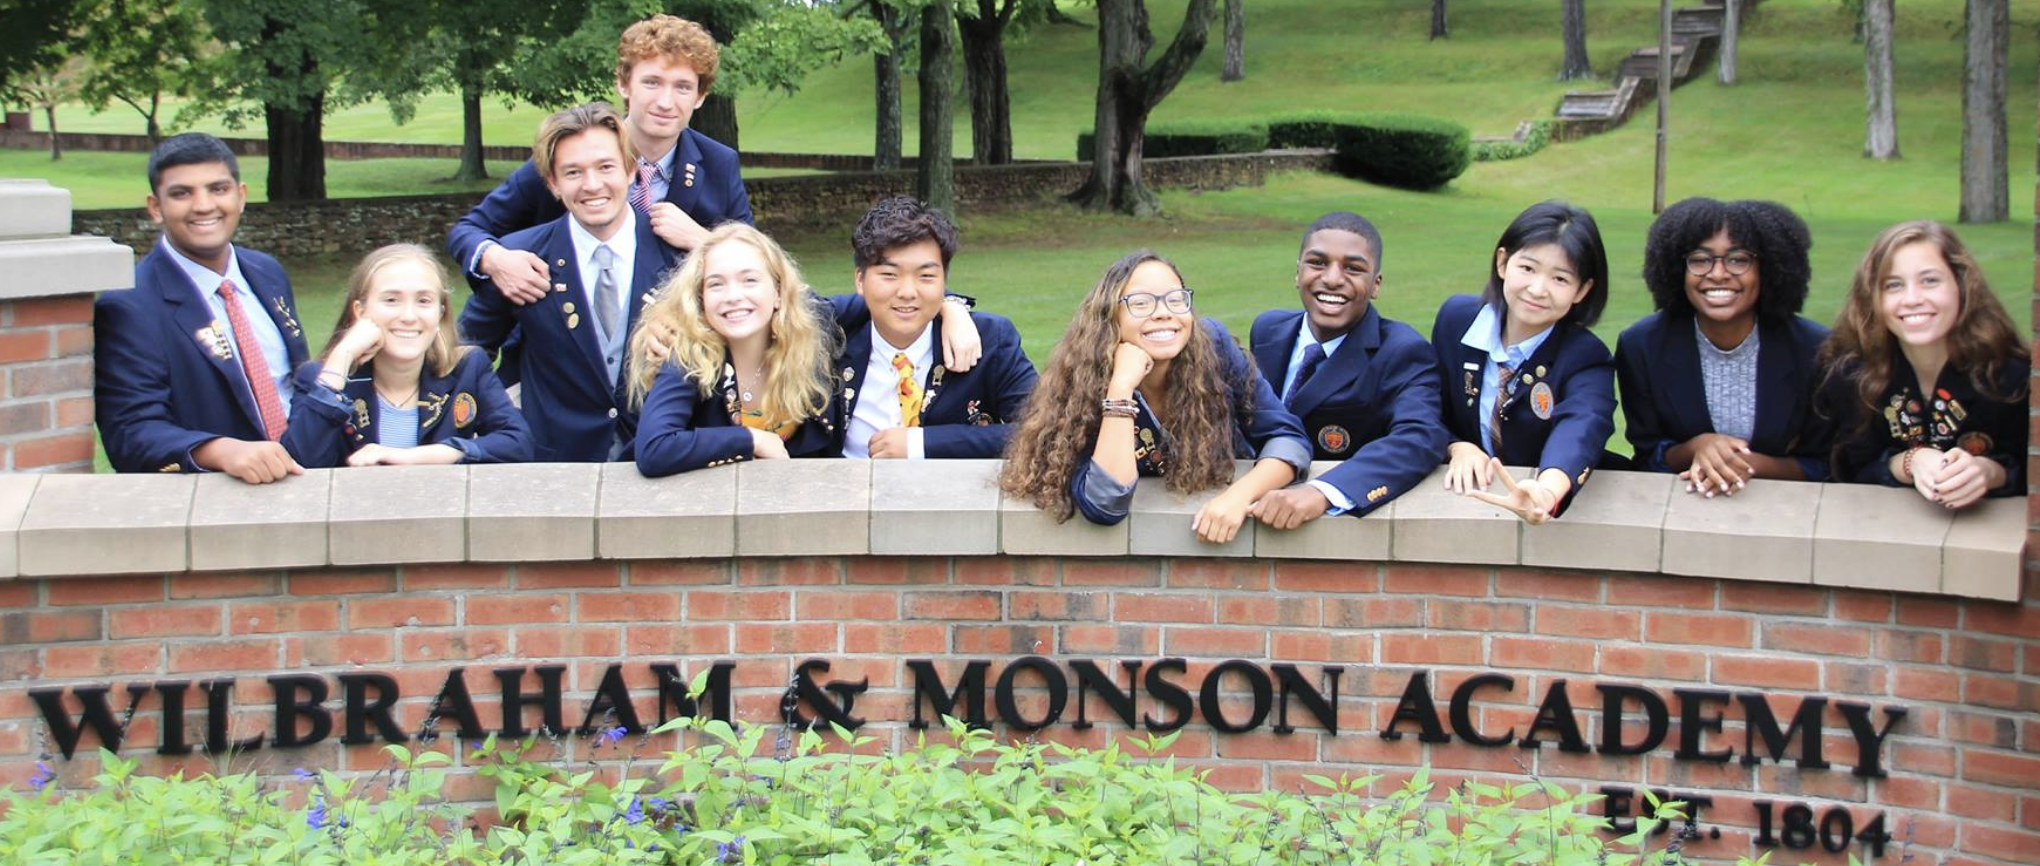 students in front of entrance sign